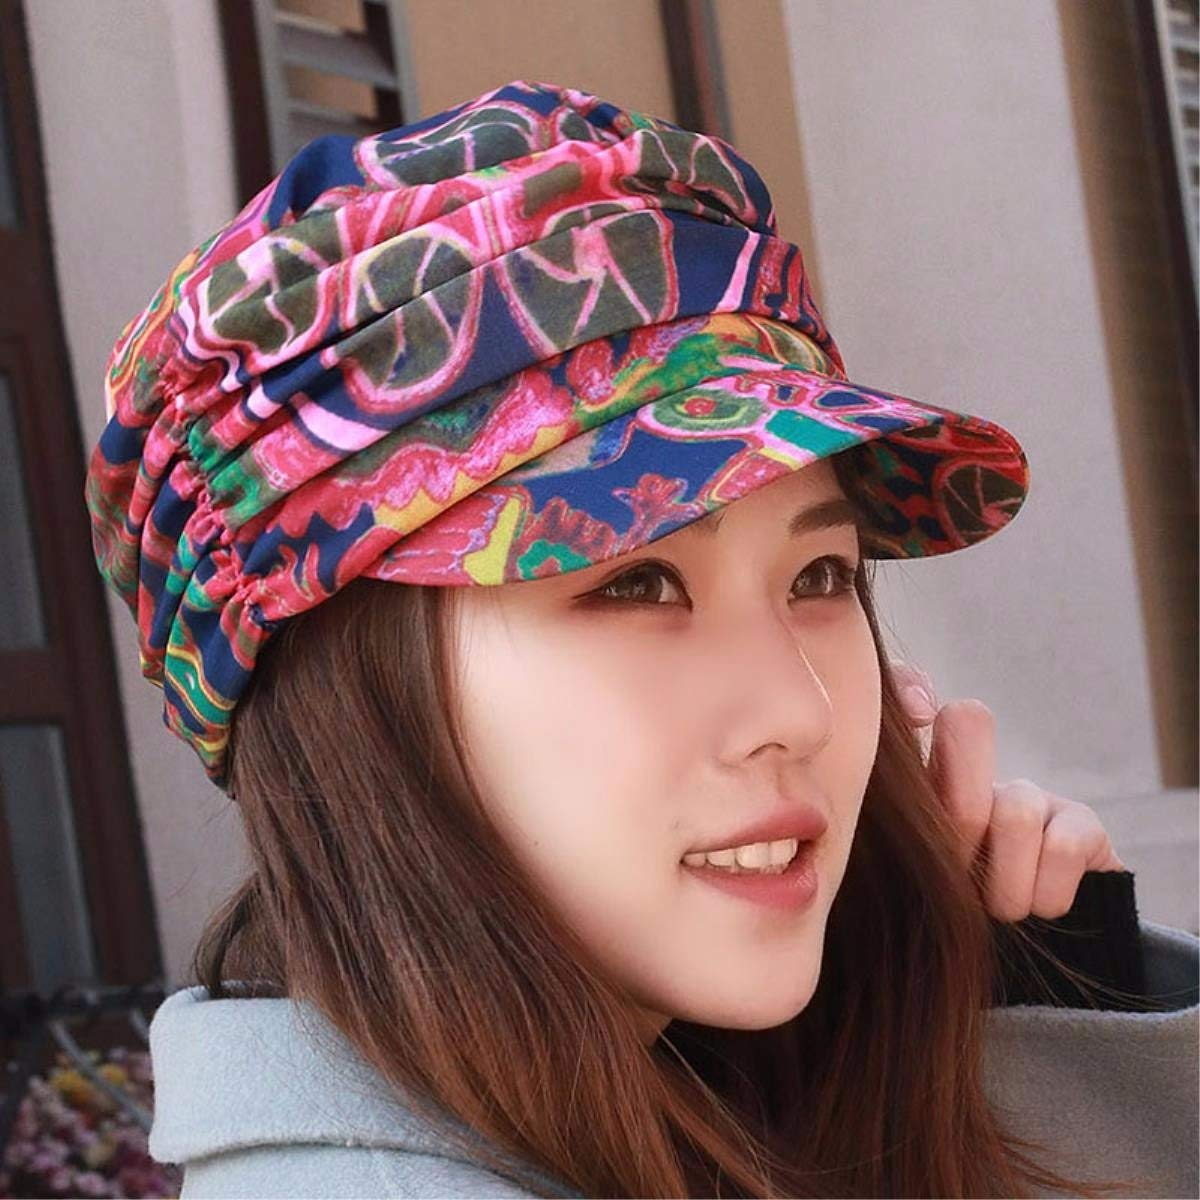 F BRNEBN Female spring and summer cap flat top hat stylish visor outdoor alpine hat CLOTH HAT